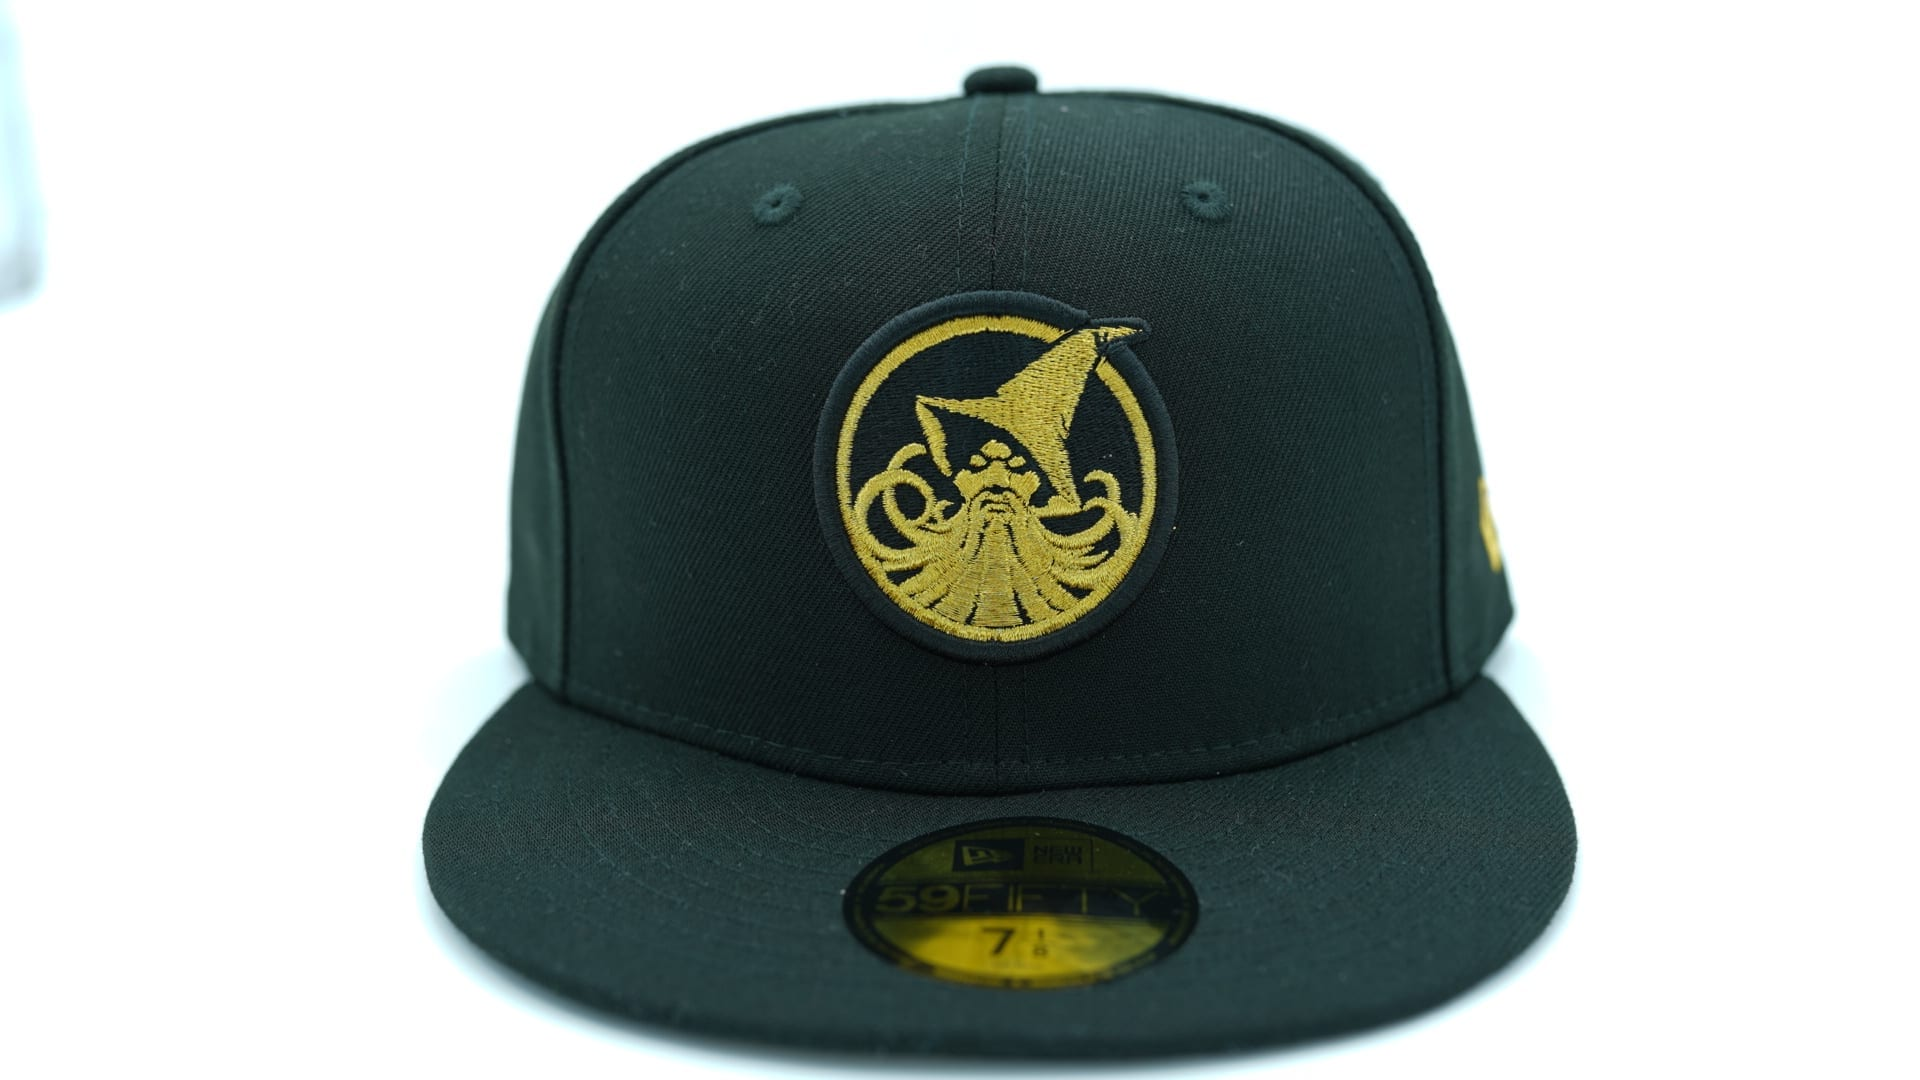 7318129e618 New York Jets White Fitted Baseball Cap by MITCHELL & NESS x NFL | Strictly  Fitteds